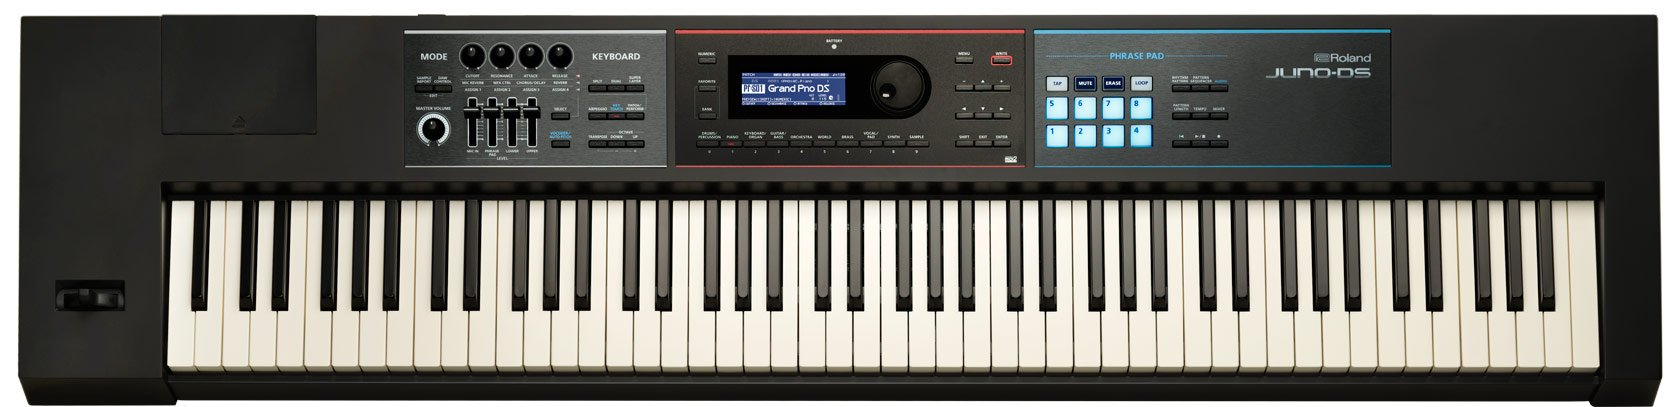 Roland Lightweight, 88-note Weighted-action Keyboard with Pro Sounds (JUNO-DS88) by Roland